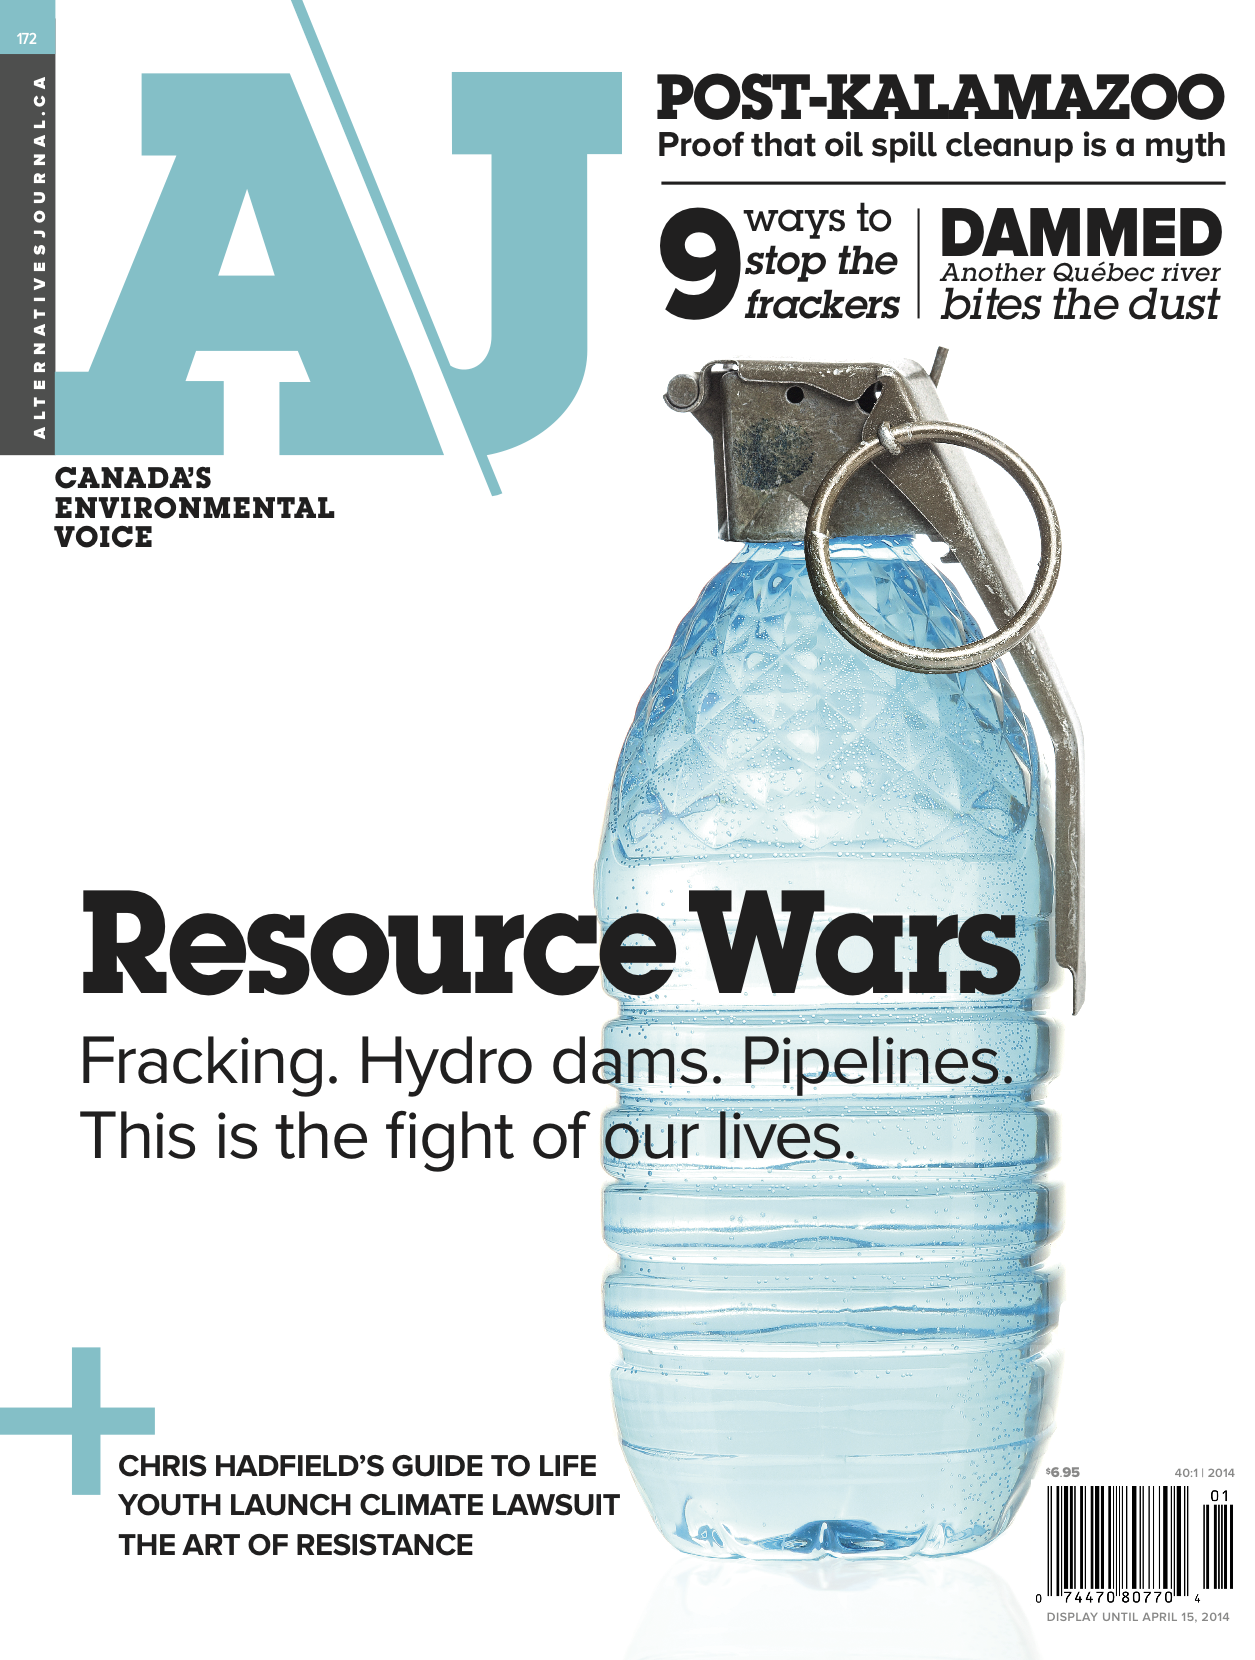 2014 02 Alternatives Journal Feb Issue contains NB article on 9 ways to fight fracking 40n1_COVER